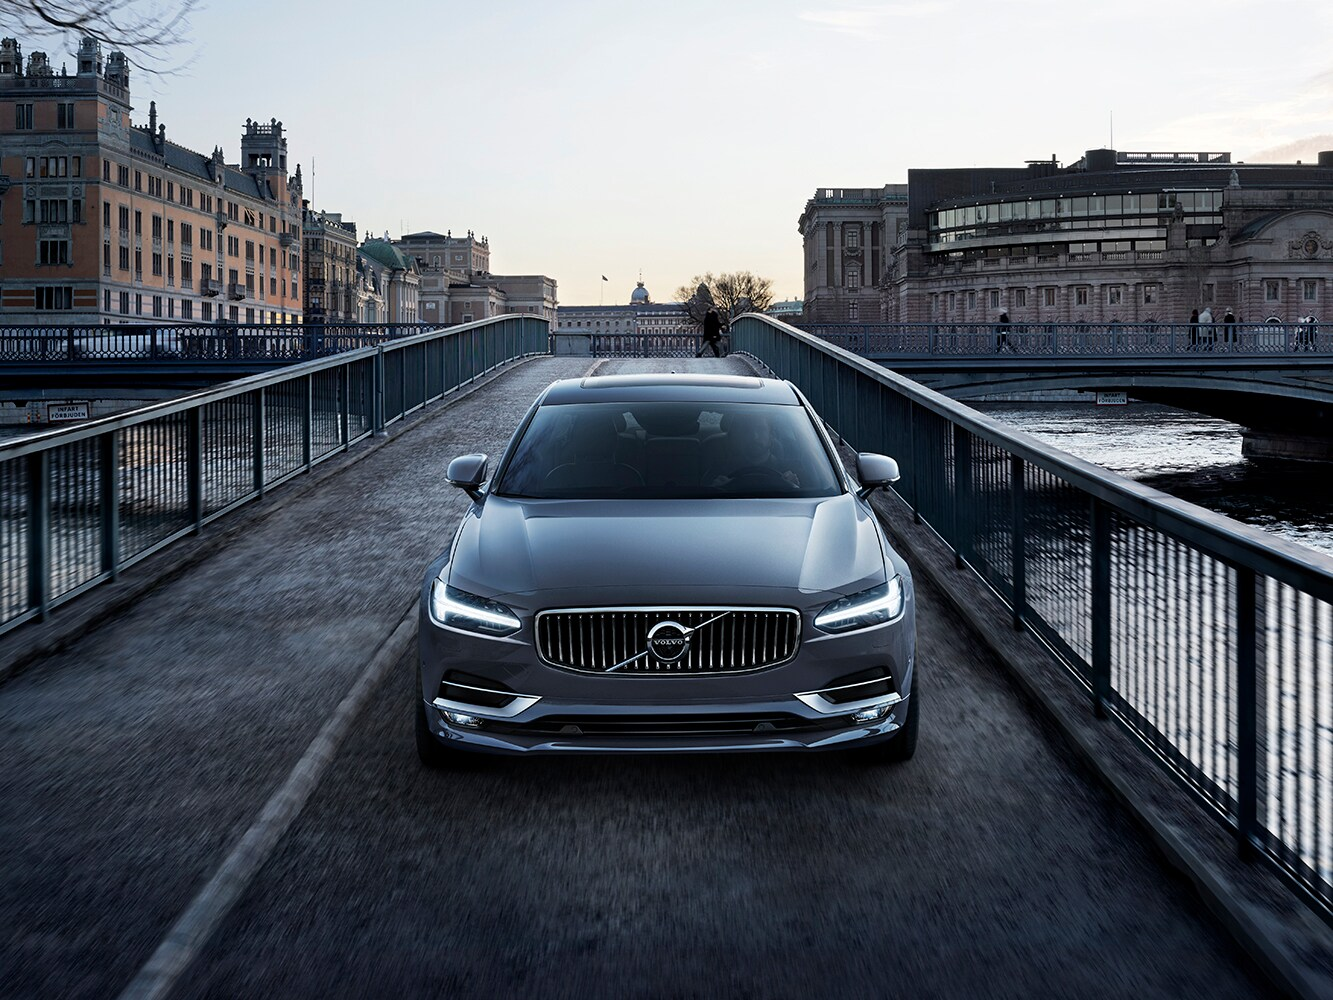 Front view of a Volvo S90 crossing a bridge